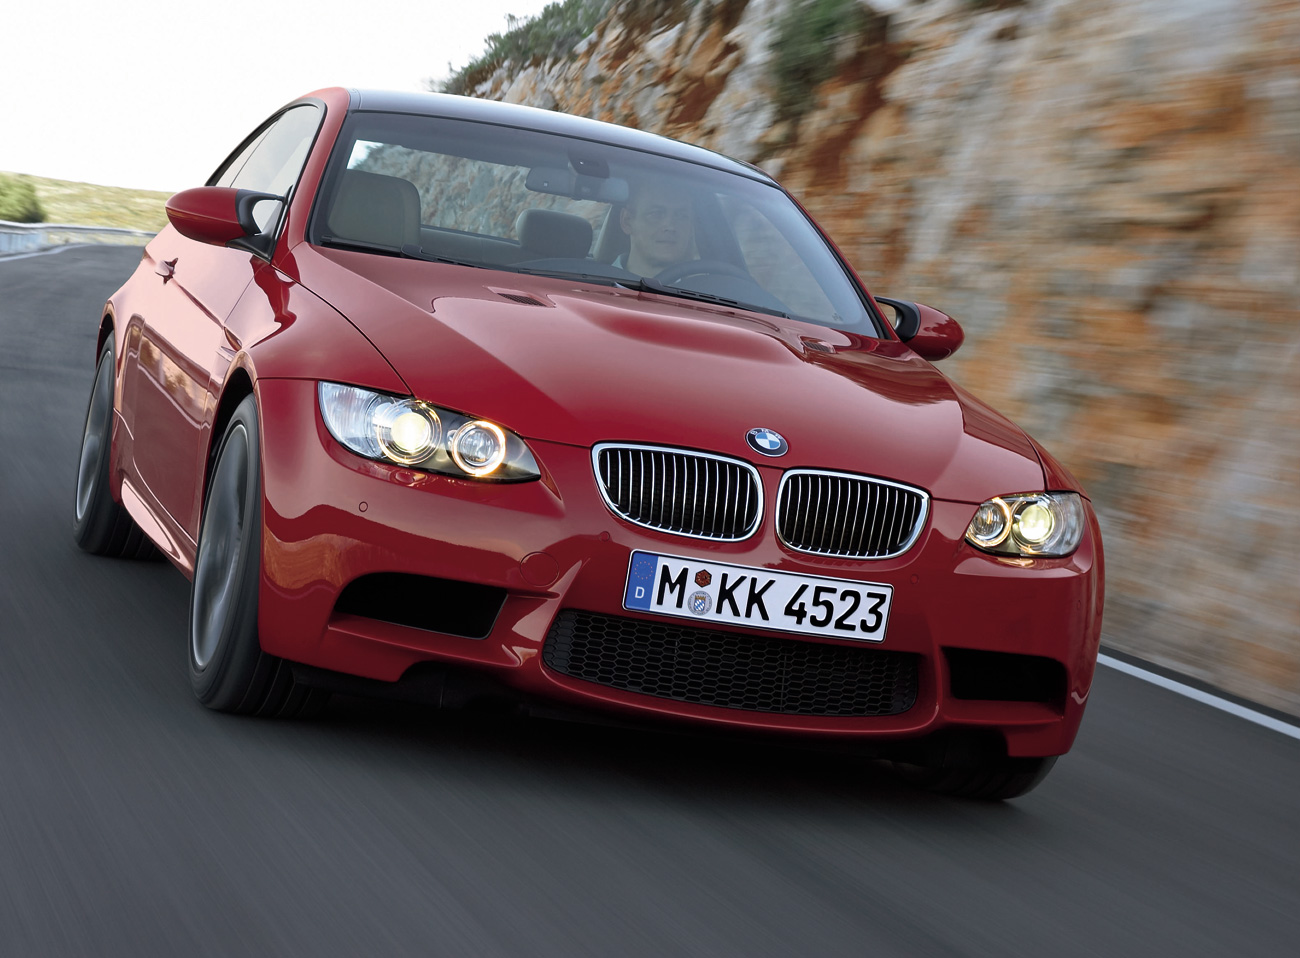 bmw cars prices in chennai its my car club. Black Bedroom Furniture Sets. Home Design Ideas